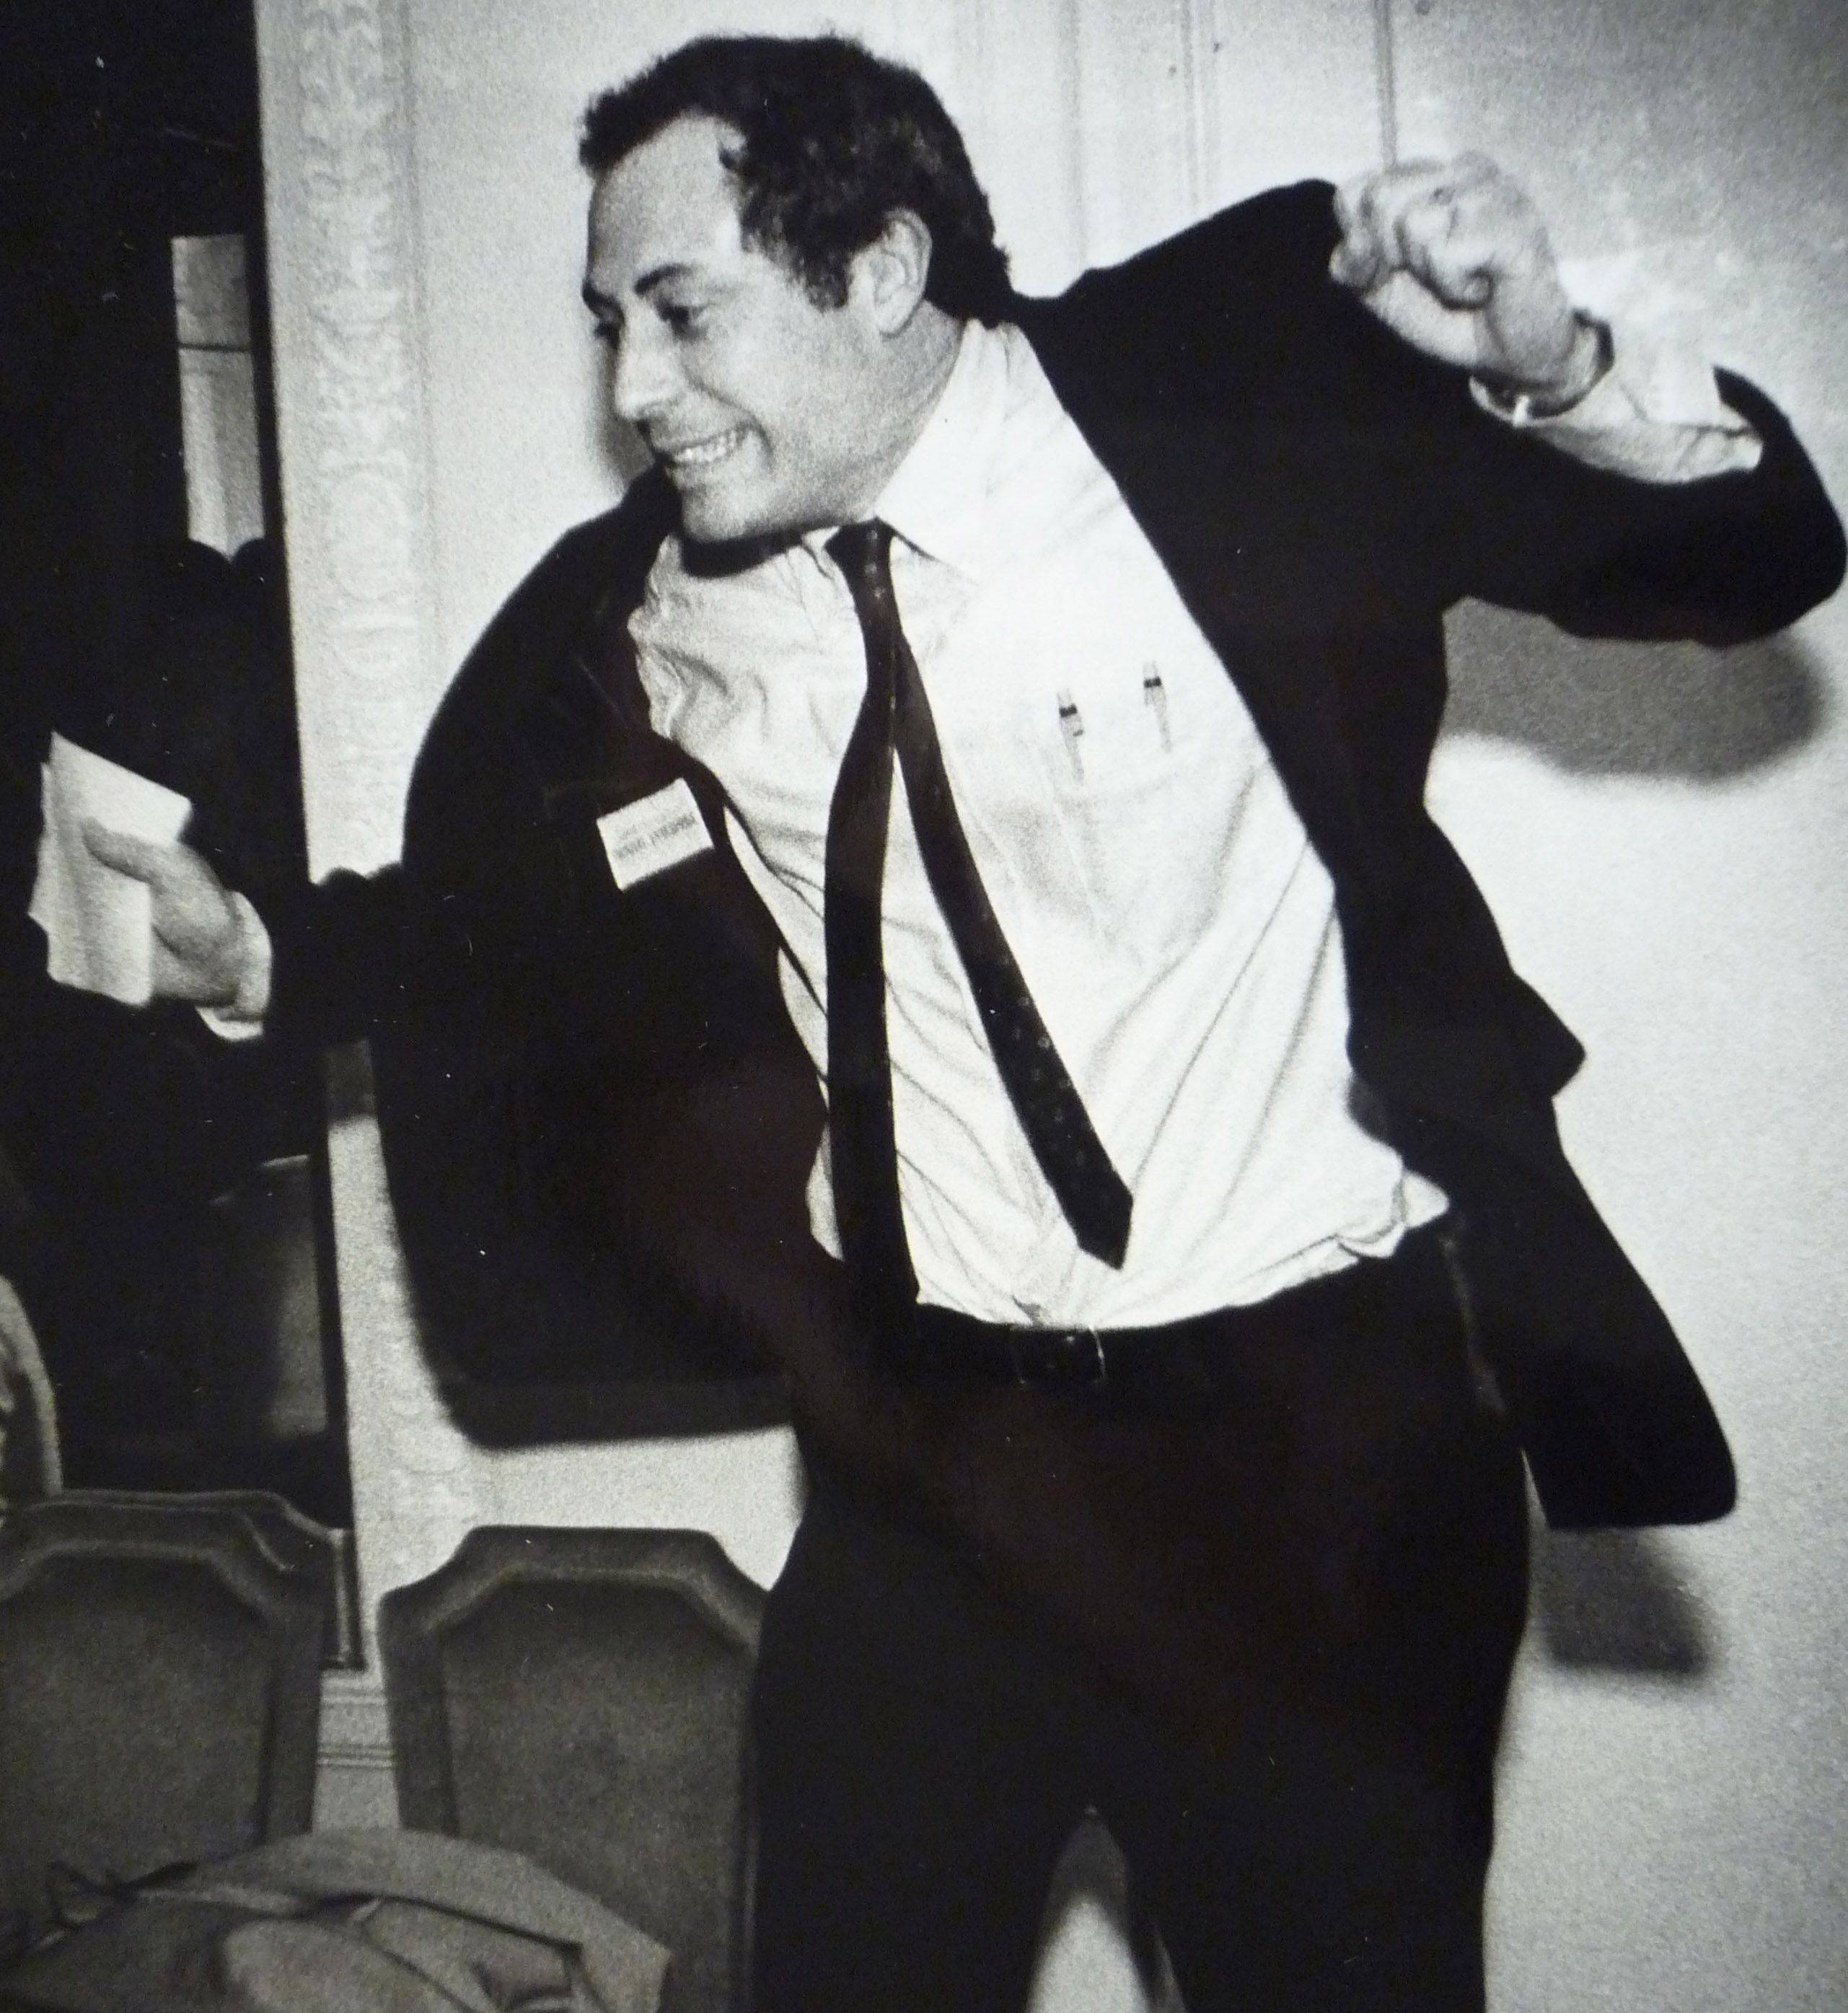 An excited Quinn reacts as early election returns show him doing well in his bid to oust state Treasurer James H. Donnewald in March 1986.